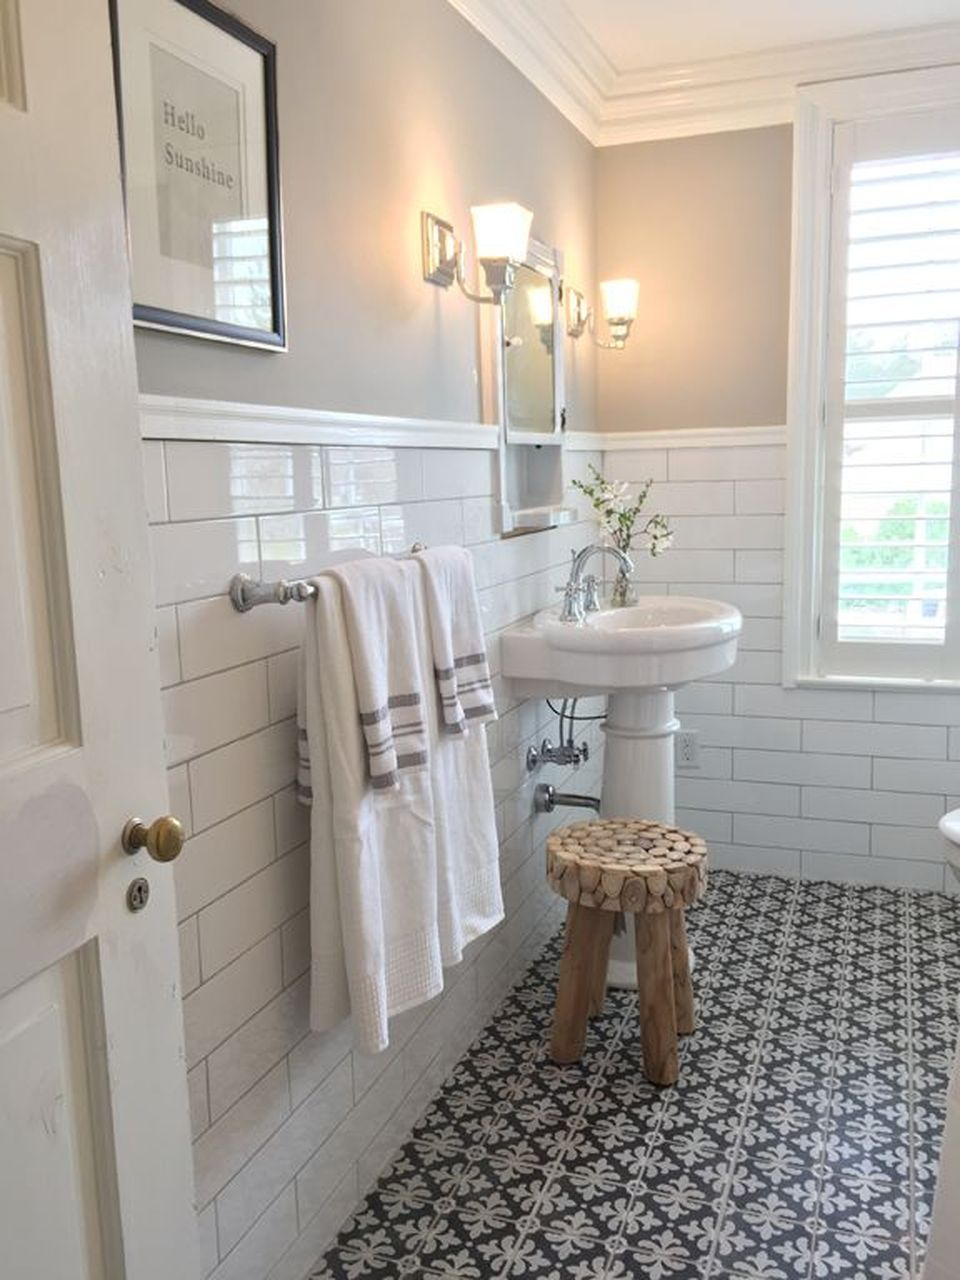 60 Inspiring Classic And Vintage Bathroom Tile Design throughout sizing 960 X 1280